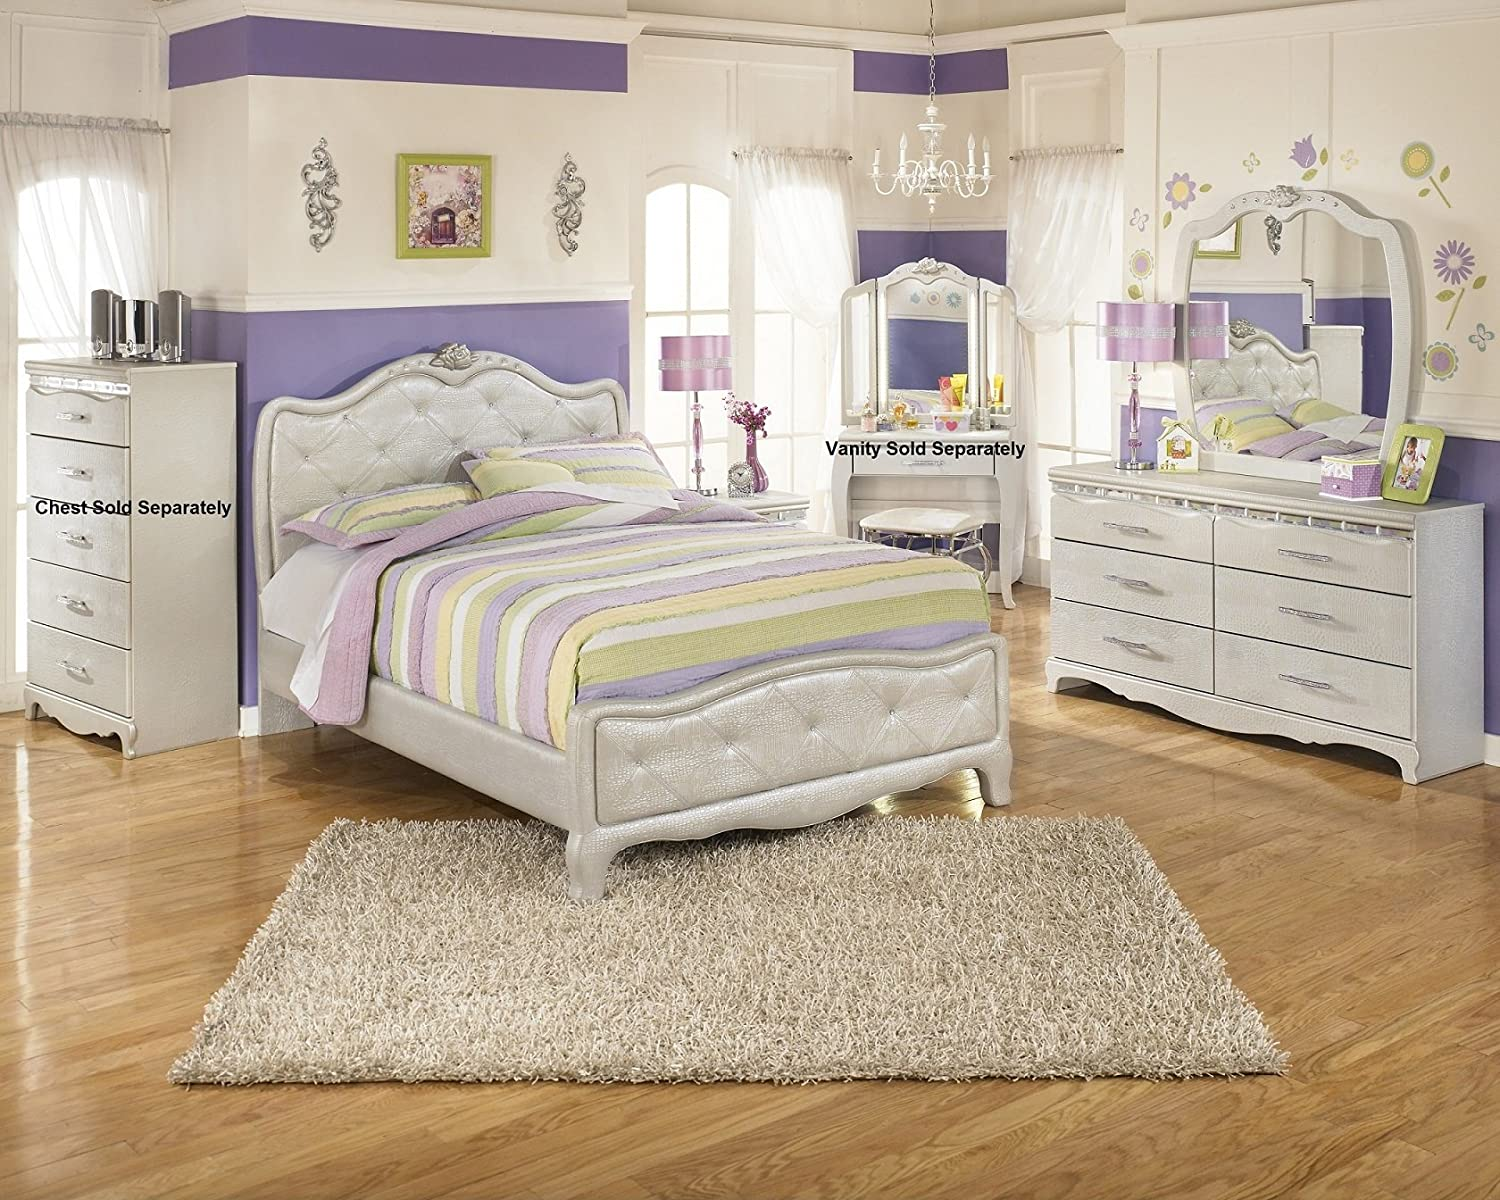 Impressive Kids Full Size Bedroom Sets Collection